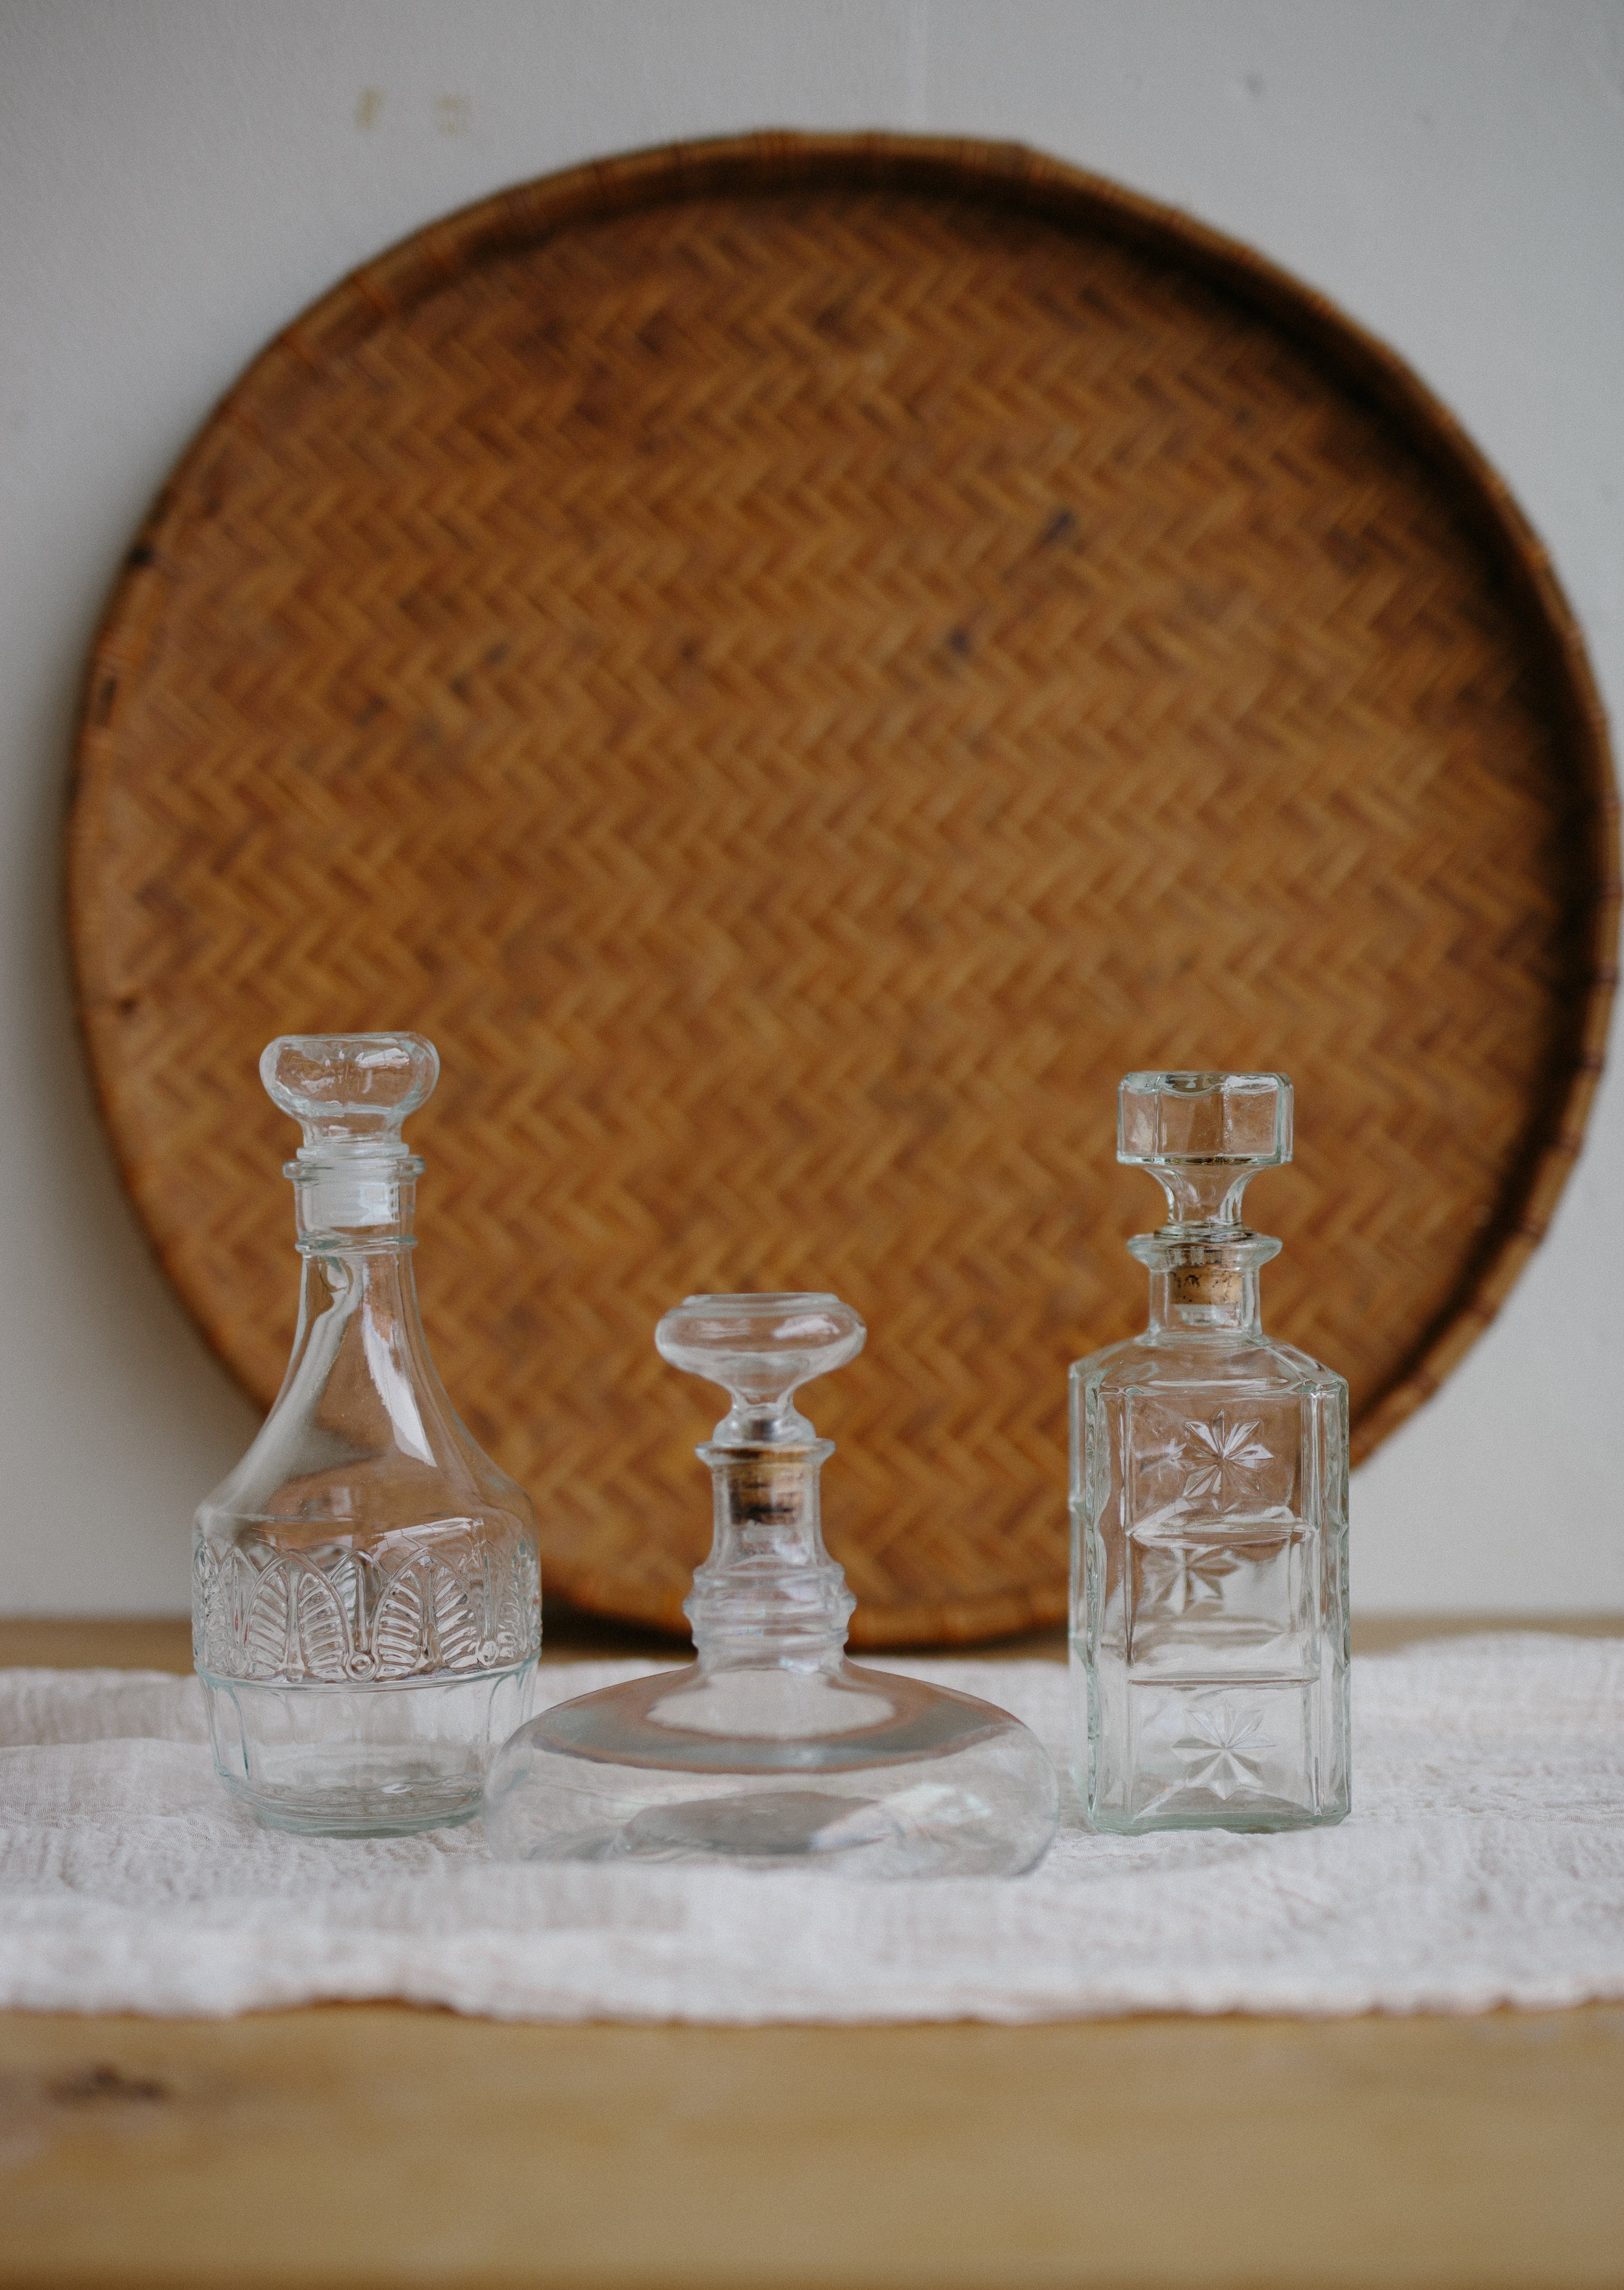 GLASS DECANTERS // $6 EACH